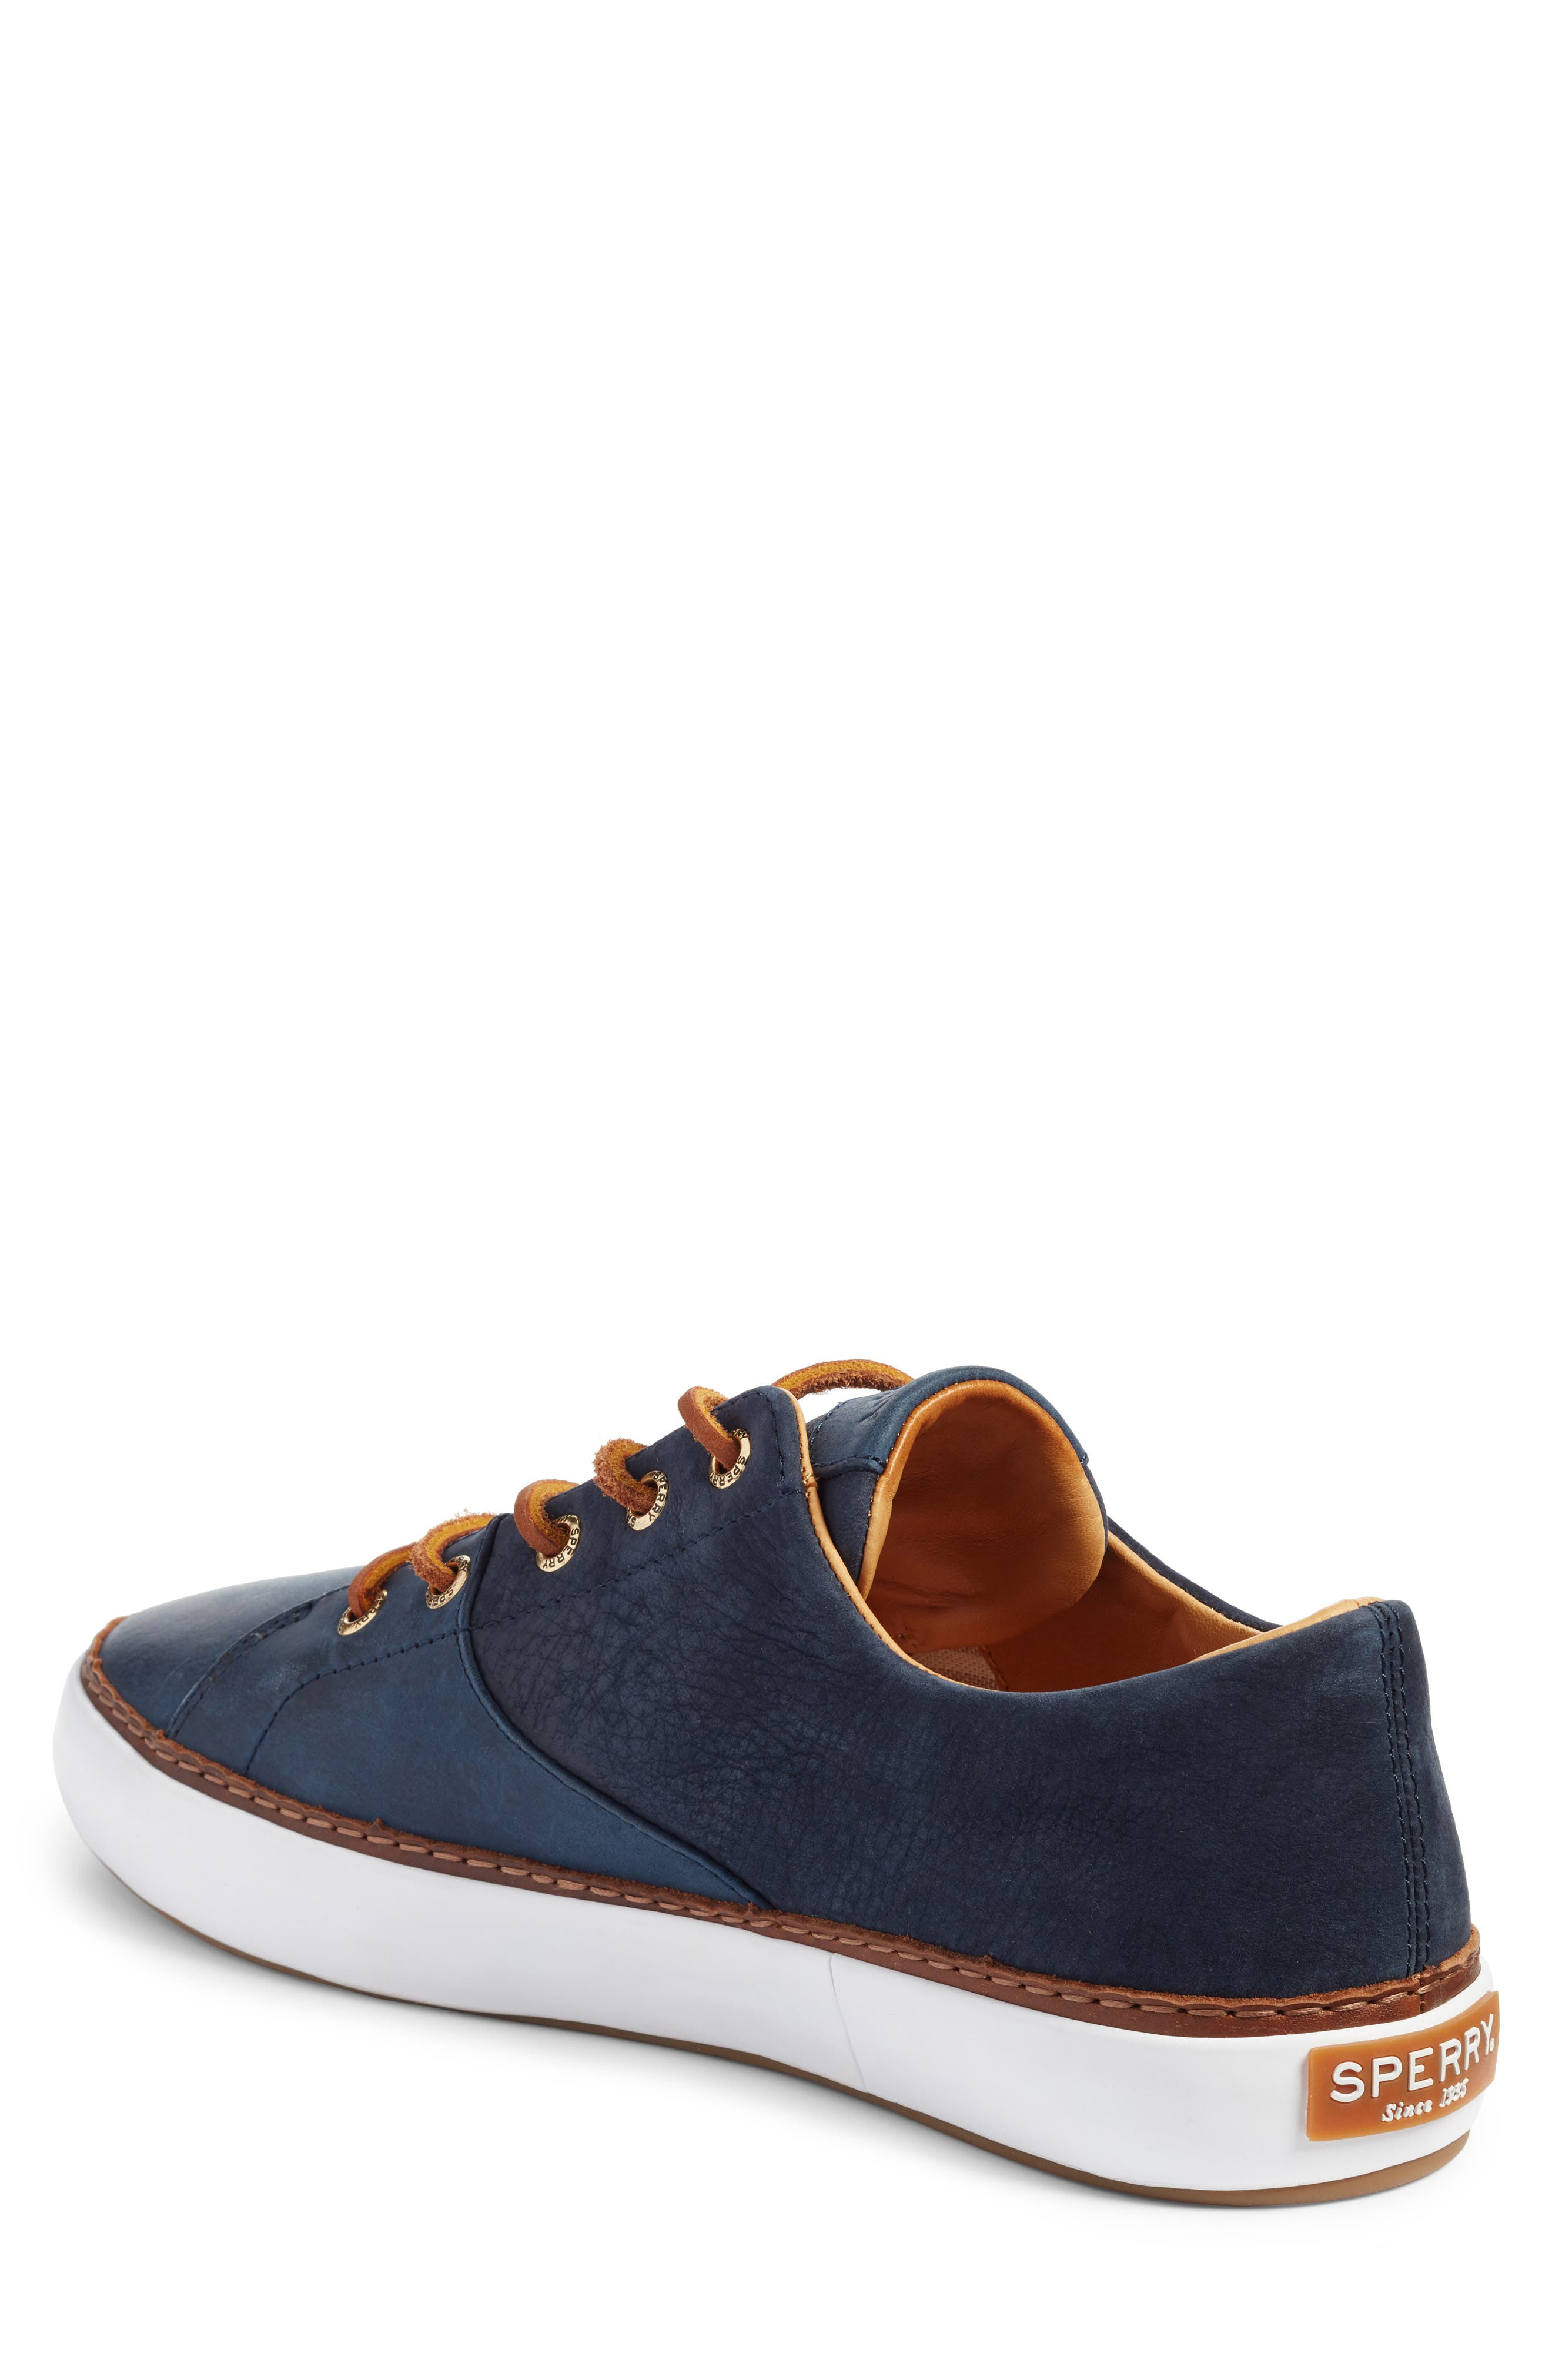 Gold Cup Haven Sneaker,                             Alternate thumbnail 2, color,                             Navy Leather